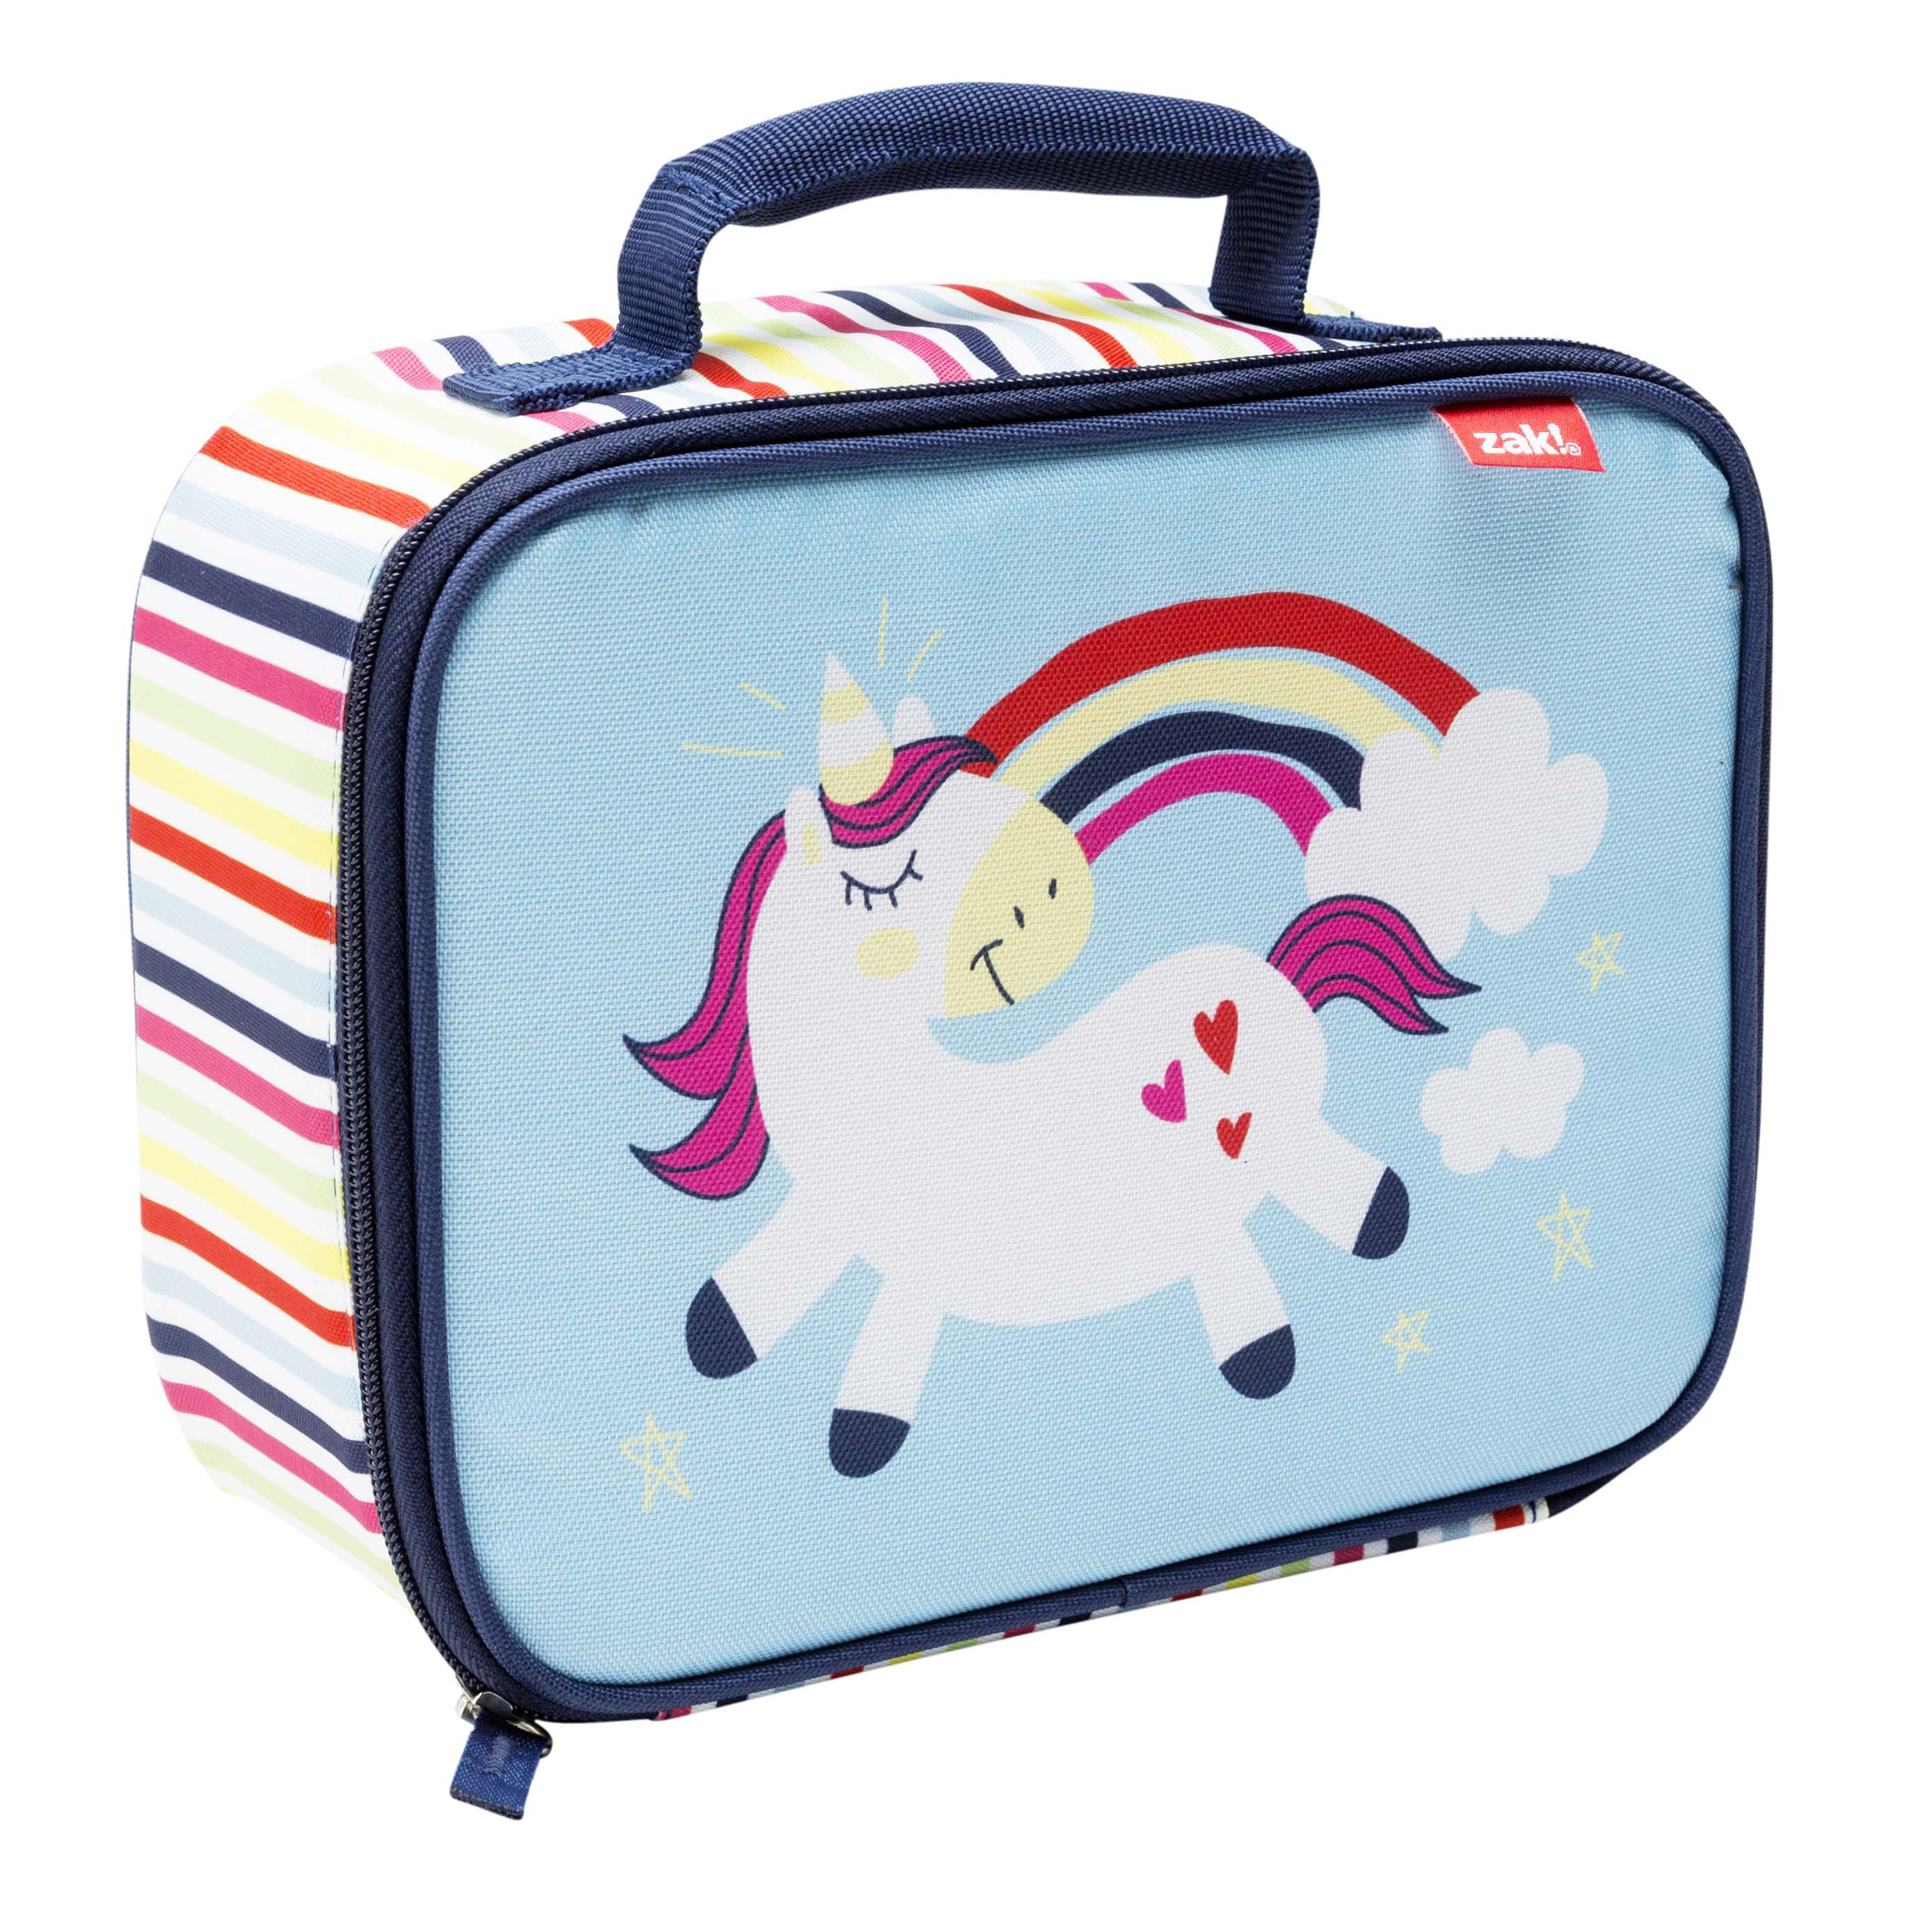 Happy Things Insulated Reusable Lunch Bag, Unicorns slideshow image 3